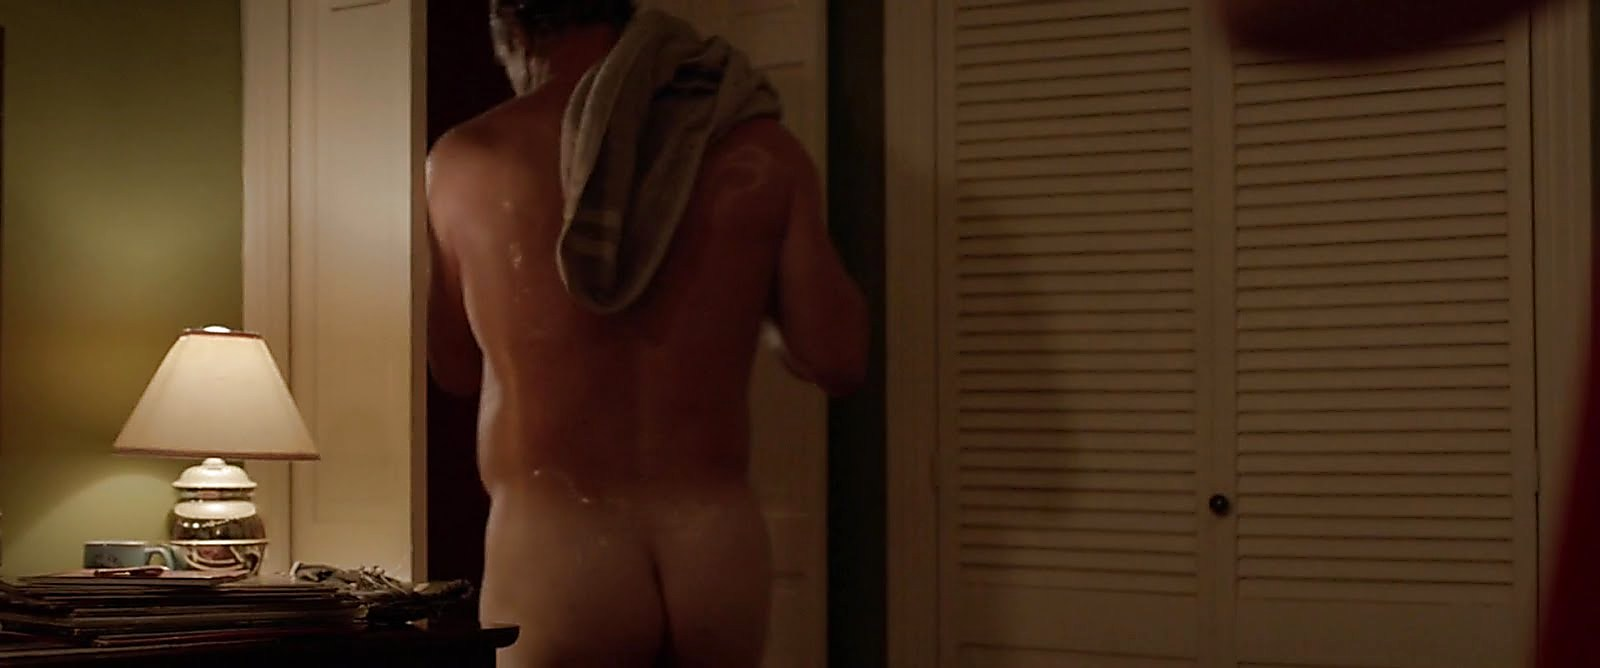 Christopher Meloni sexy shirtless scene November 23, 2017, 12pm